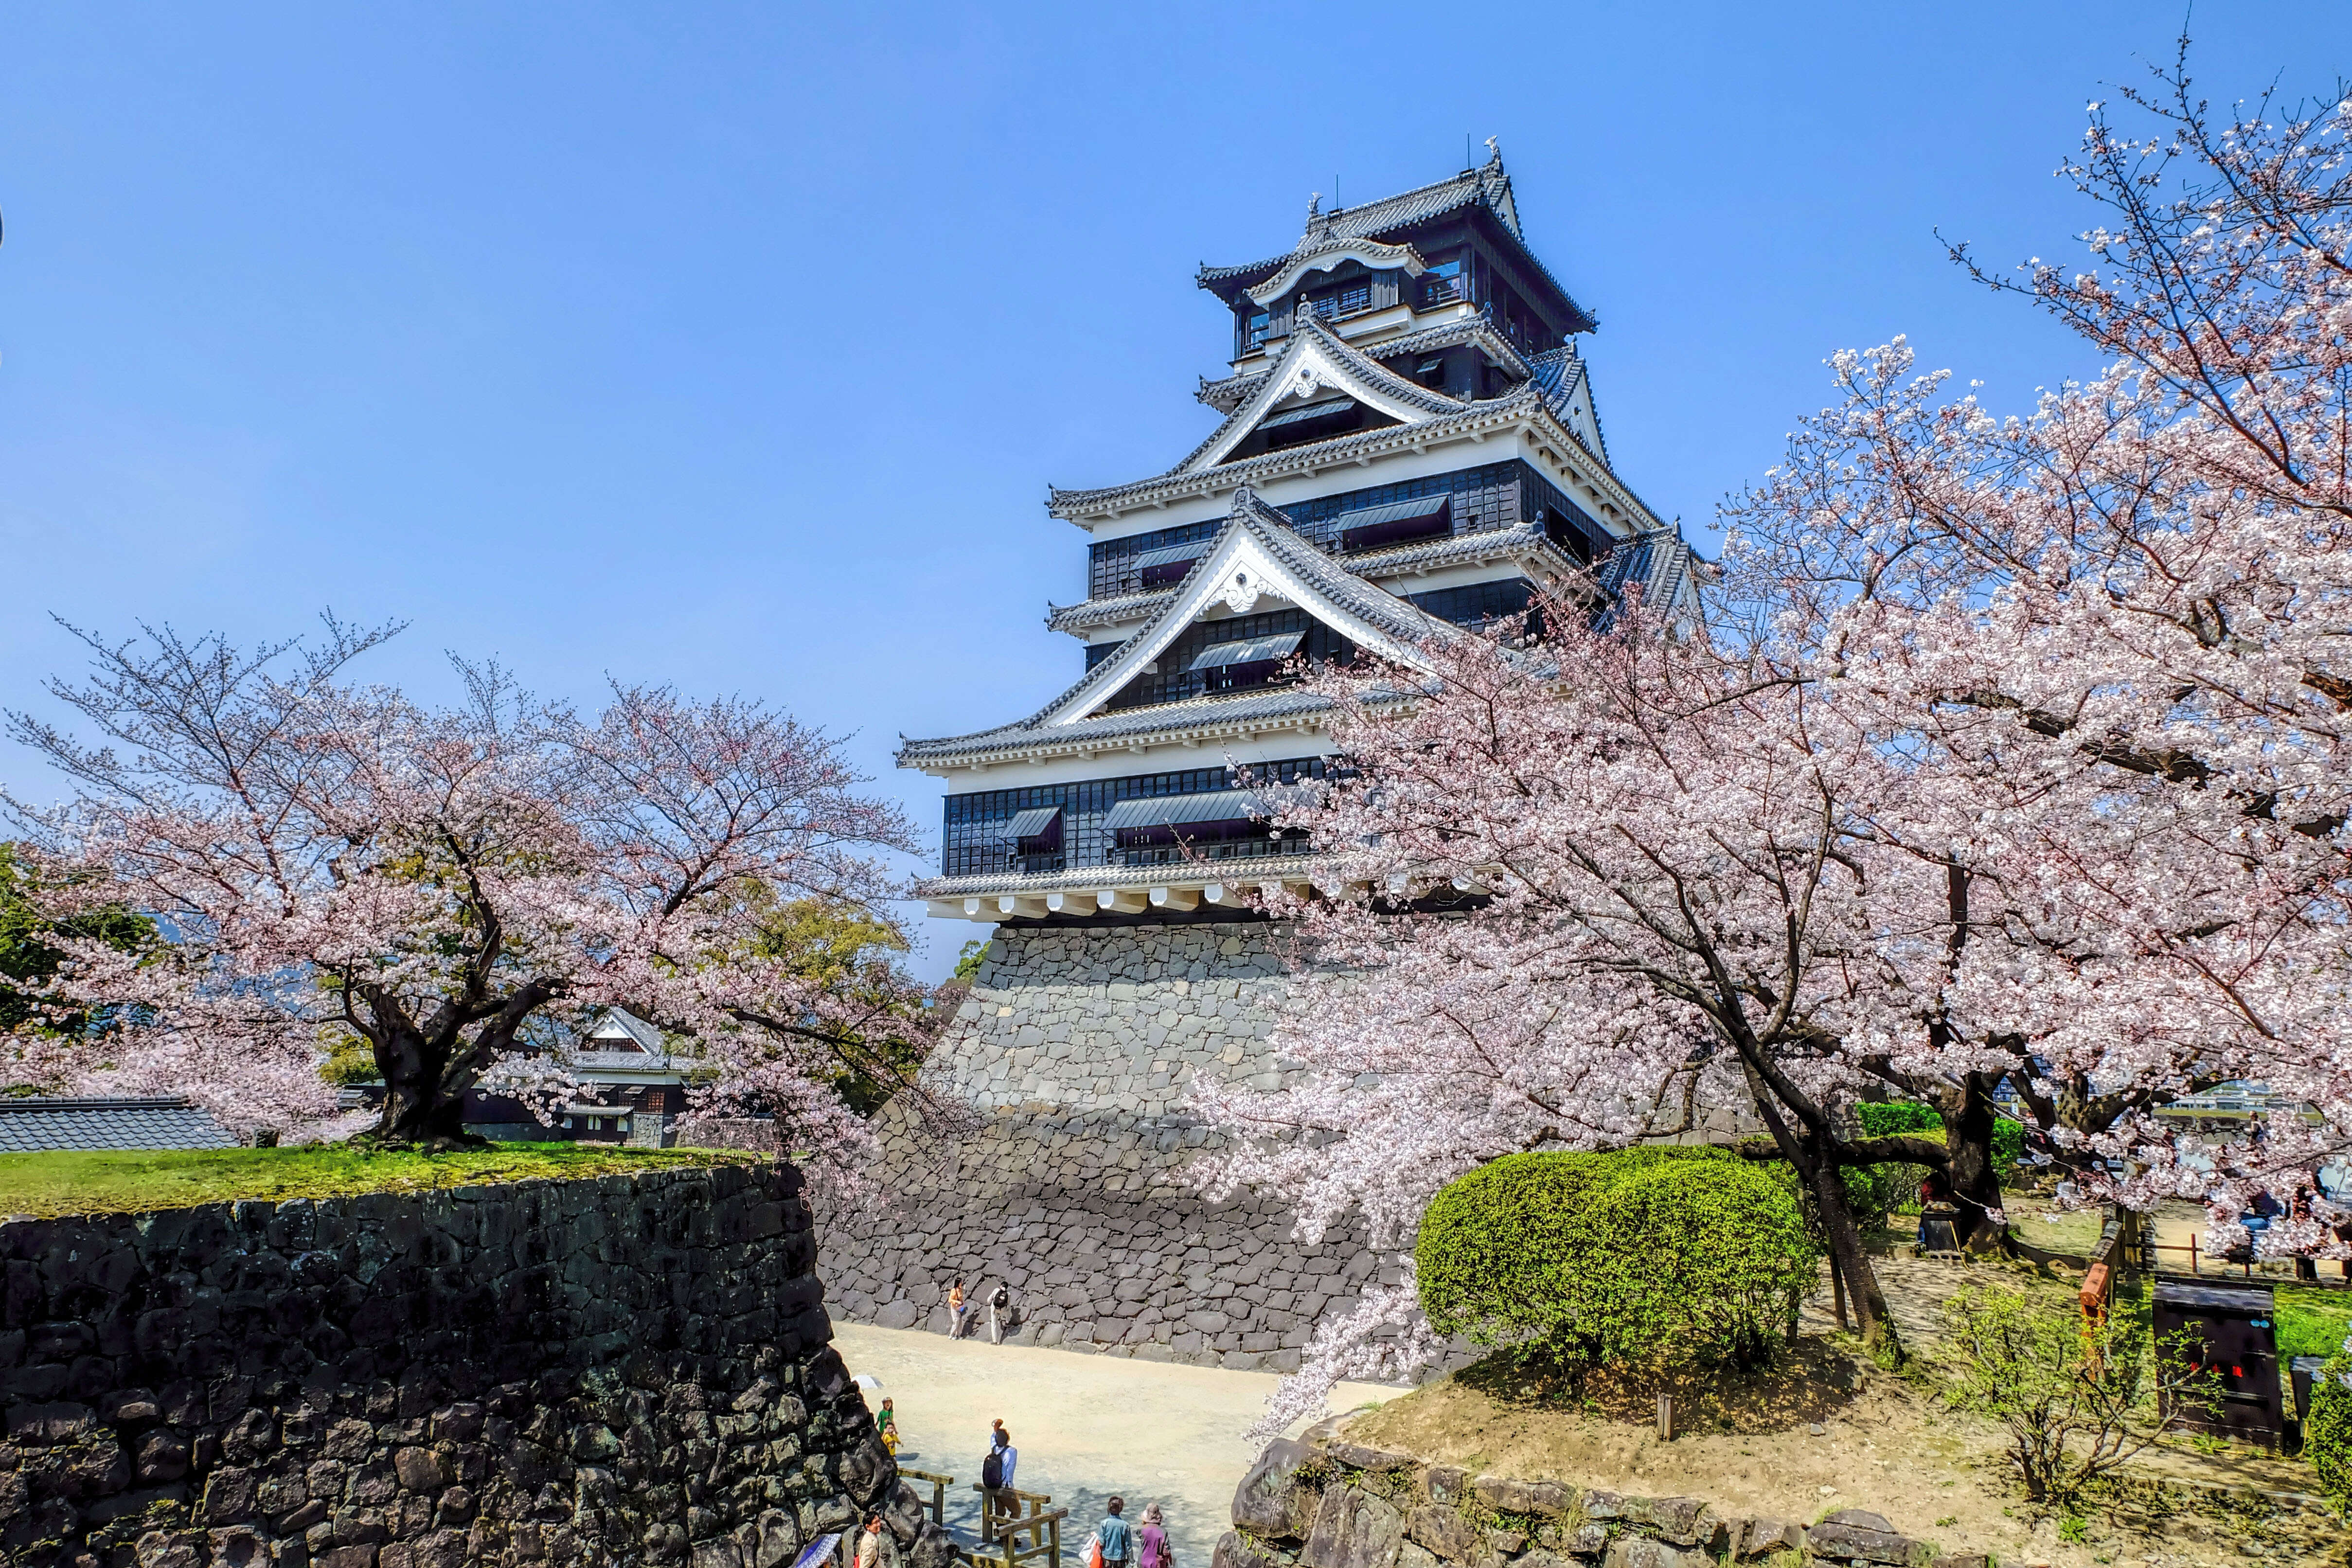 Air + 2 nights Tokyo + 10 nights Japan Explorer Cruise from $2858!